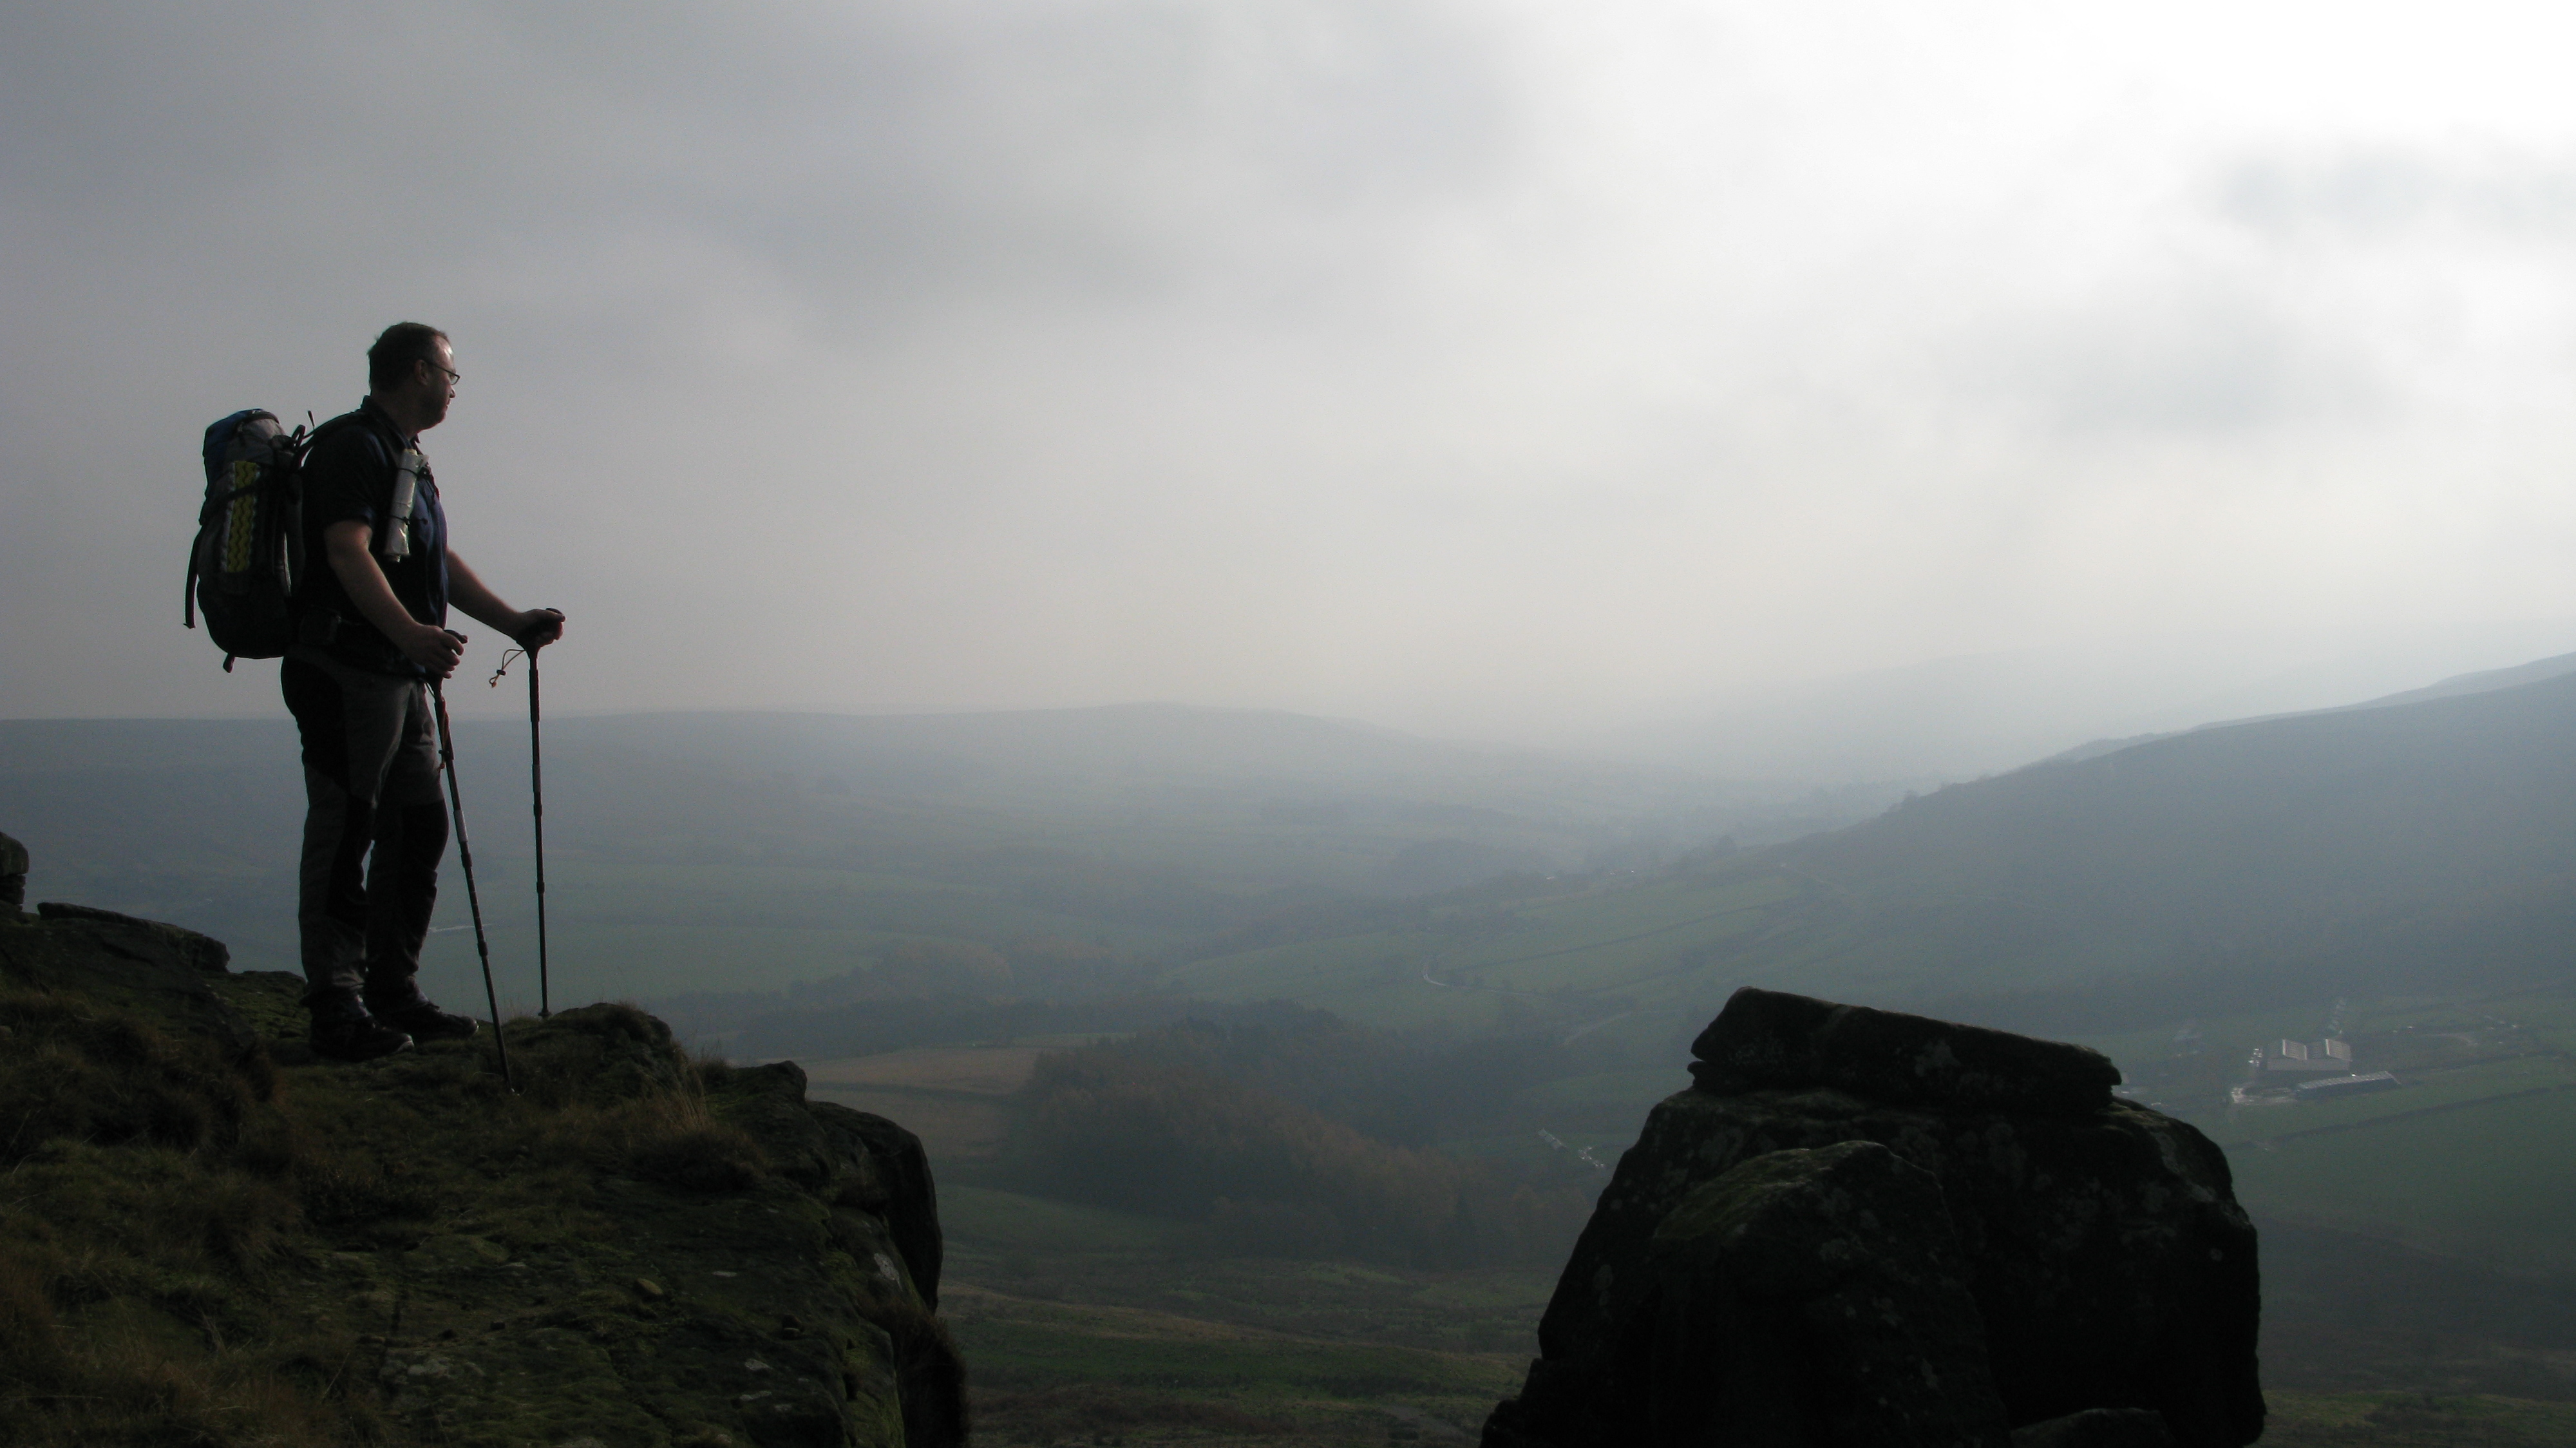 It was while visiting the sandstone crags of the Wainstones, in the North York Moors with my family in 2014 that I determioned to return to this area and walk the Clevelend Way some day. I wrote about that walk here